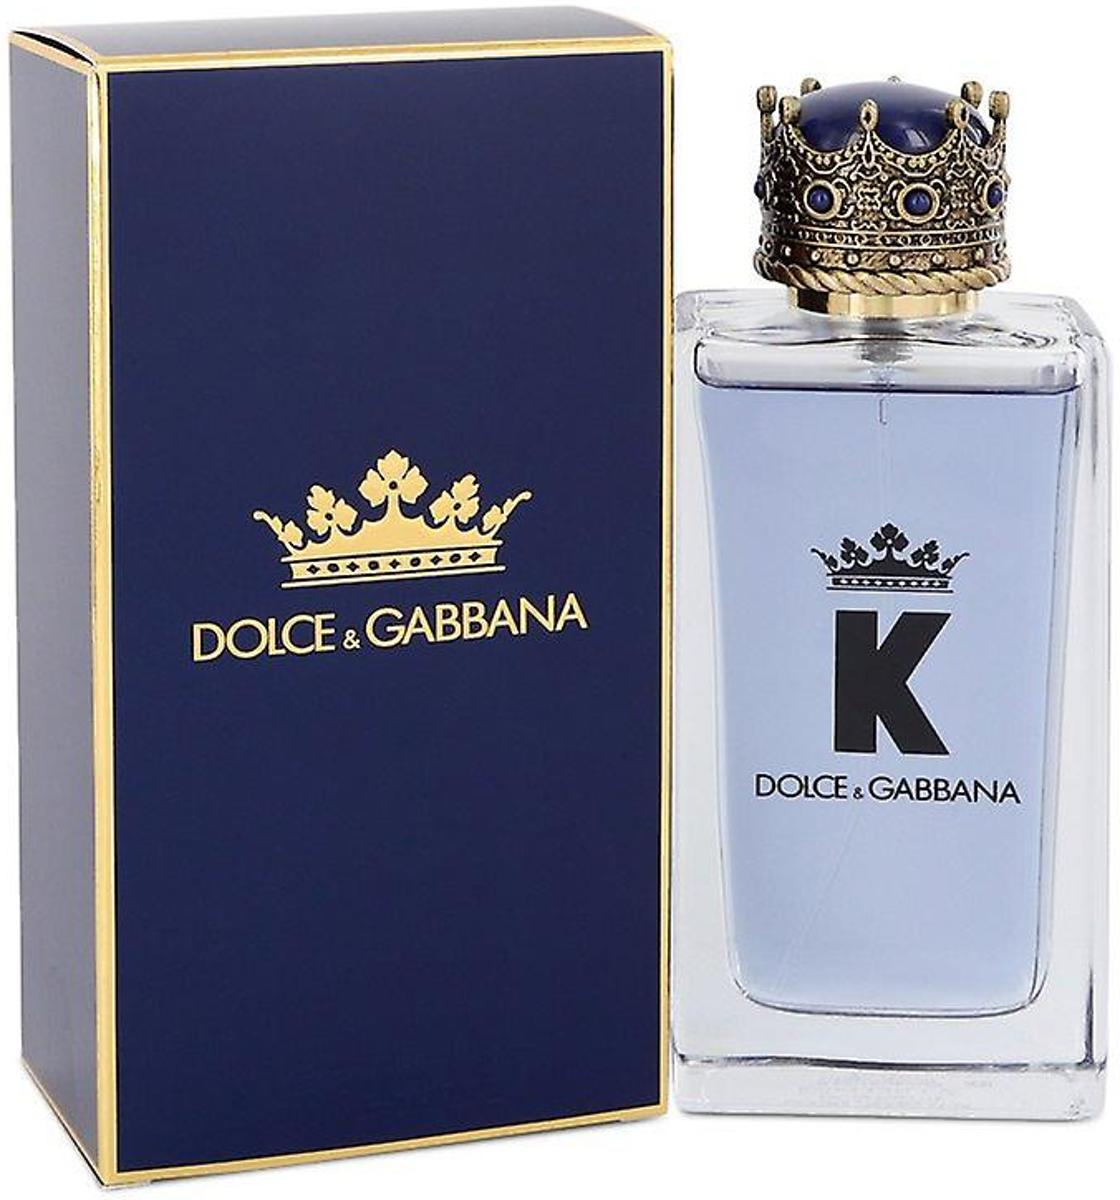 Dolce & Gabbana K by D&G eau de toilette voor heren - 100 ml